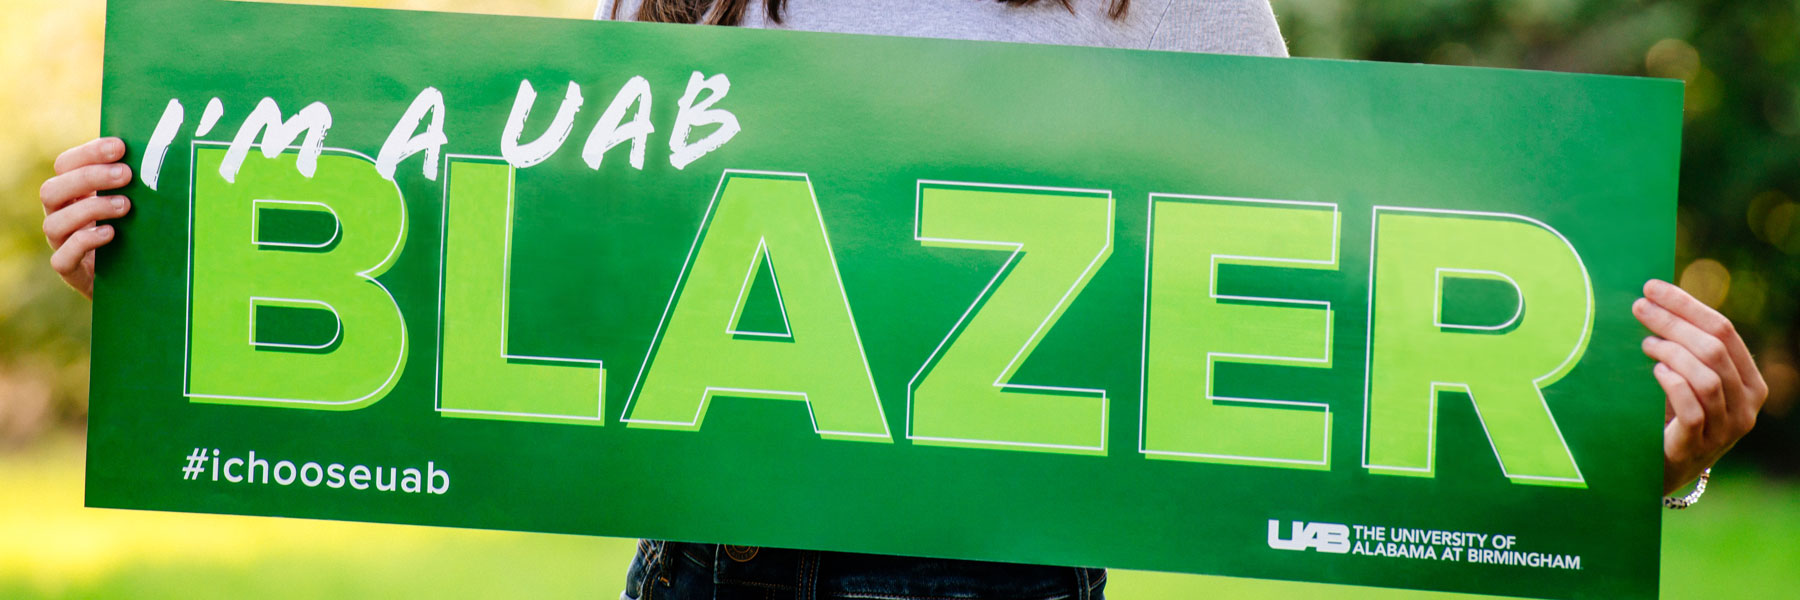 Student holding I'm a UAB Blazer sign